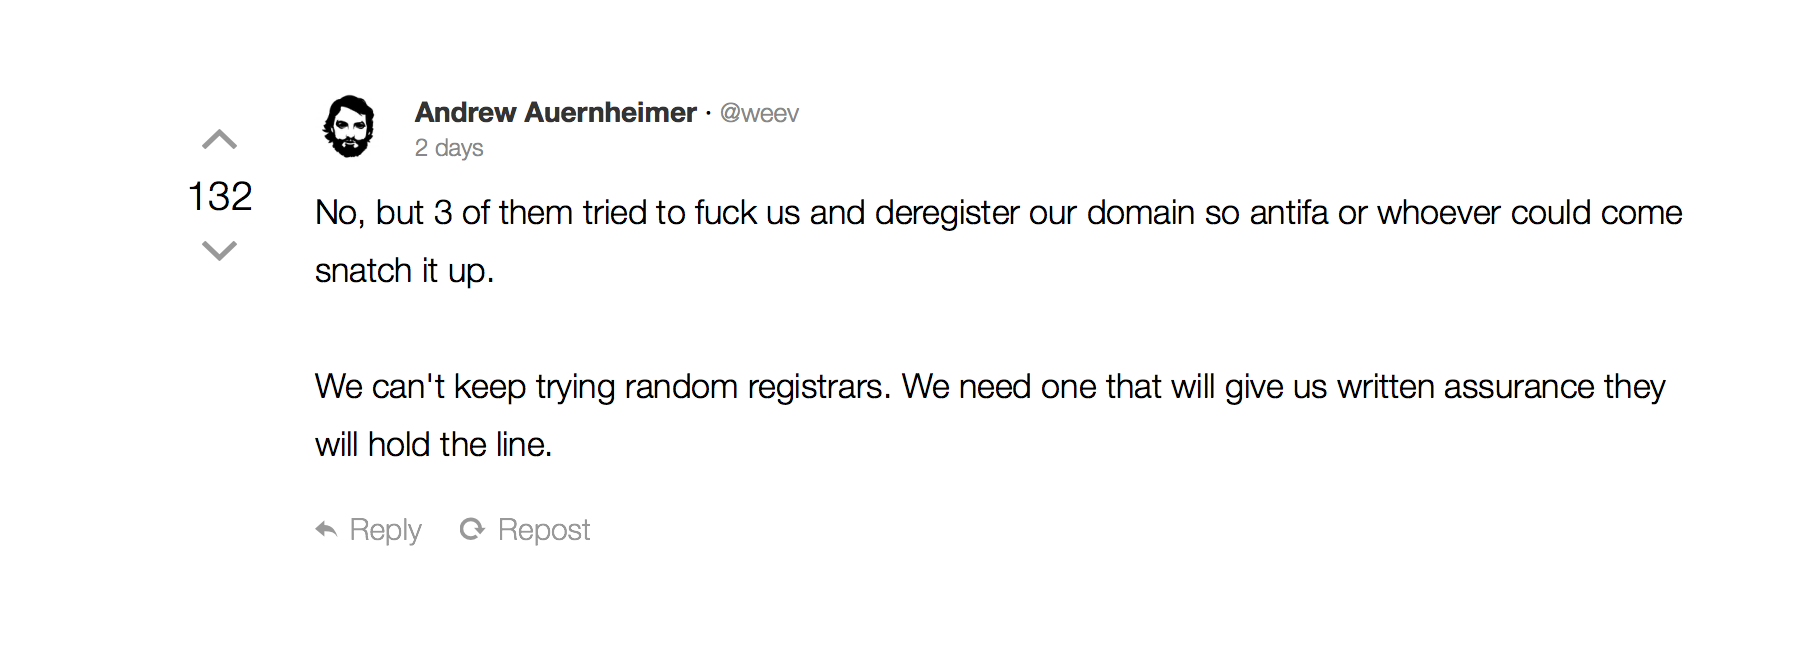 Daily Stormer has officially retreated to the dark web | TechCrunch